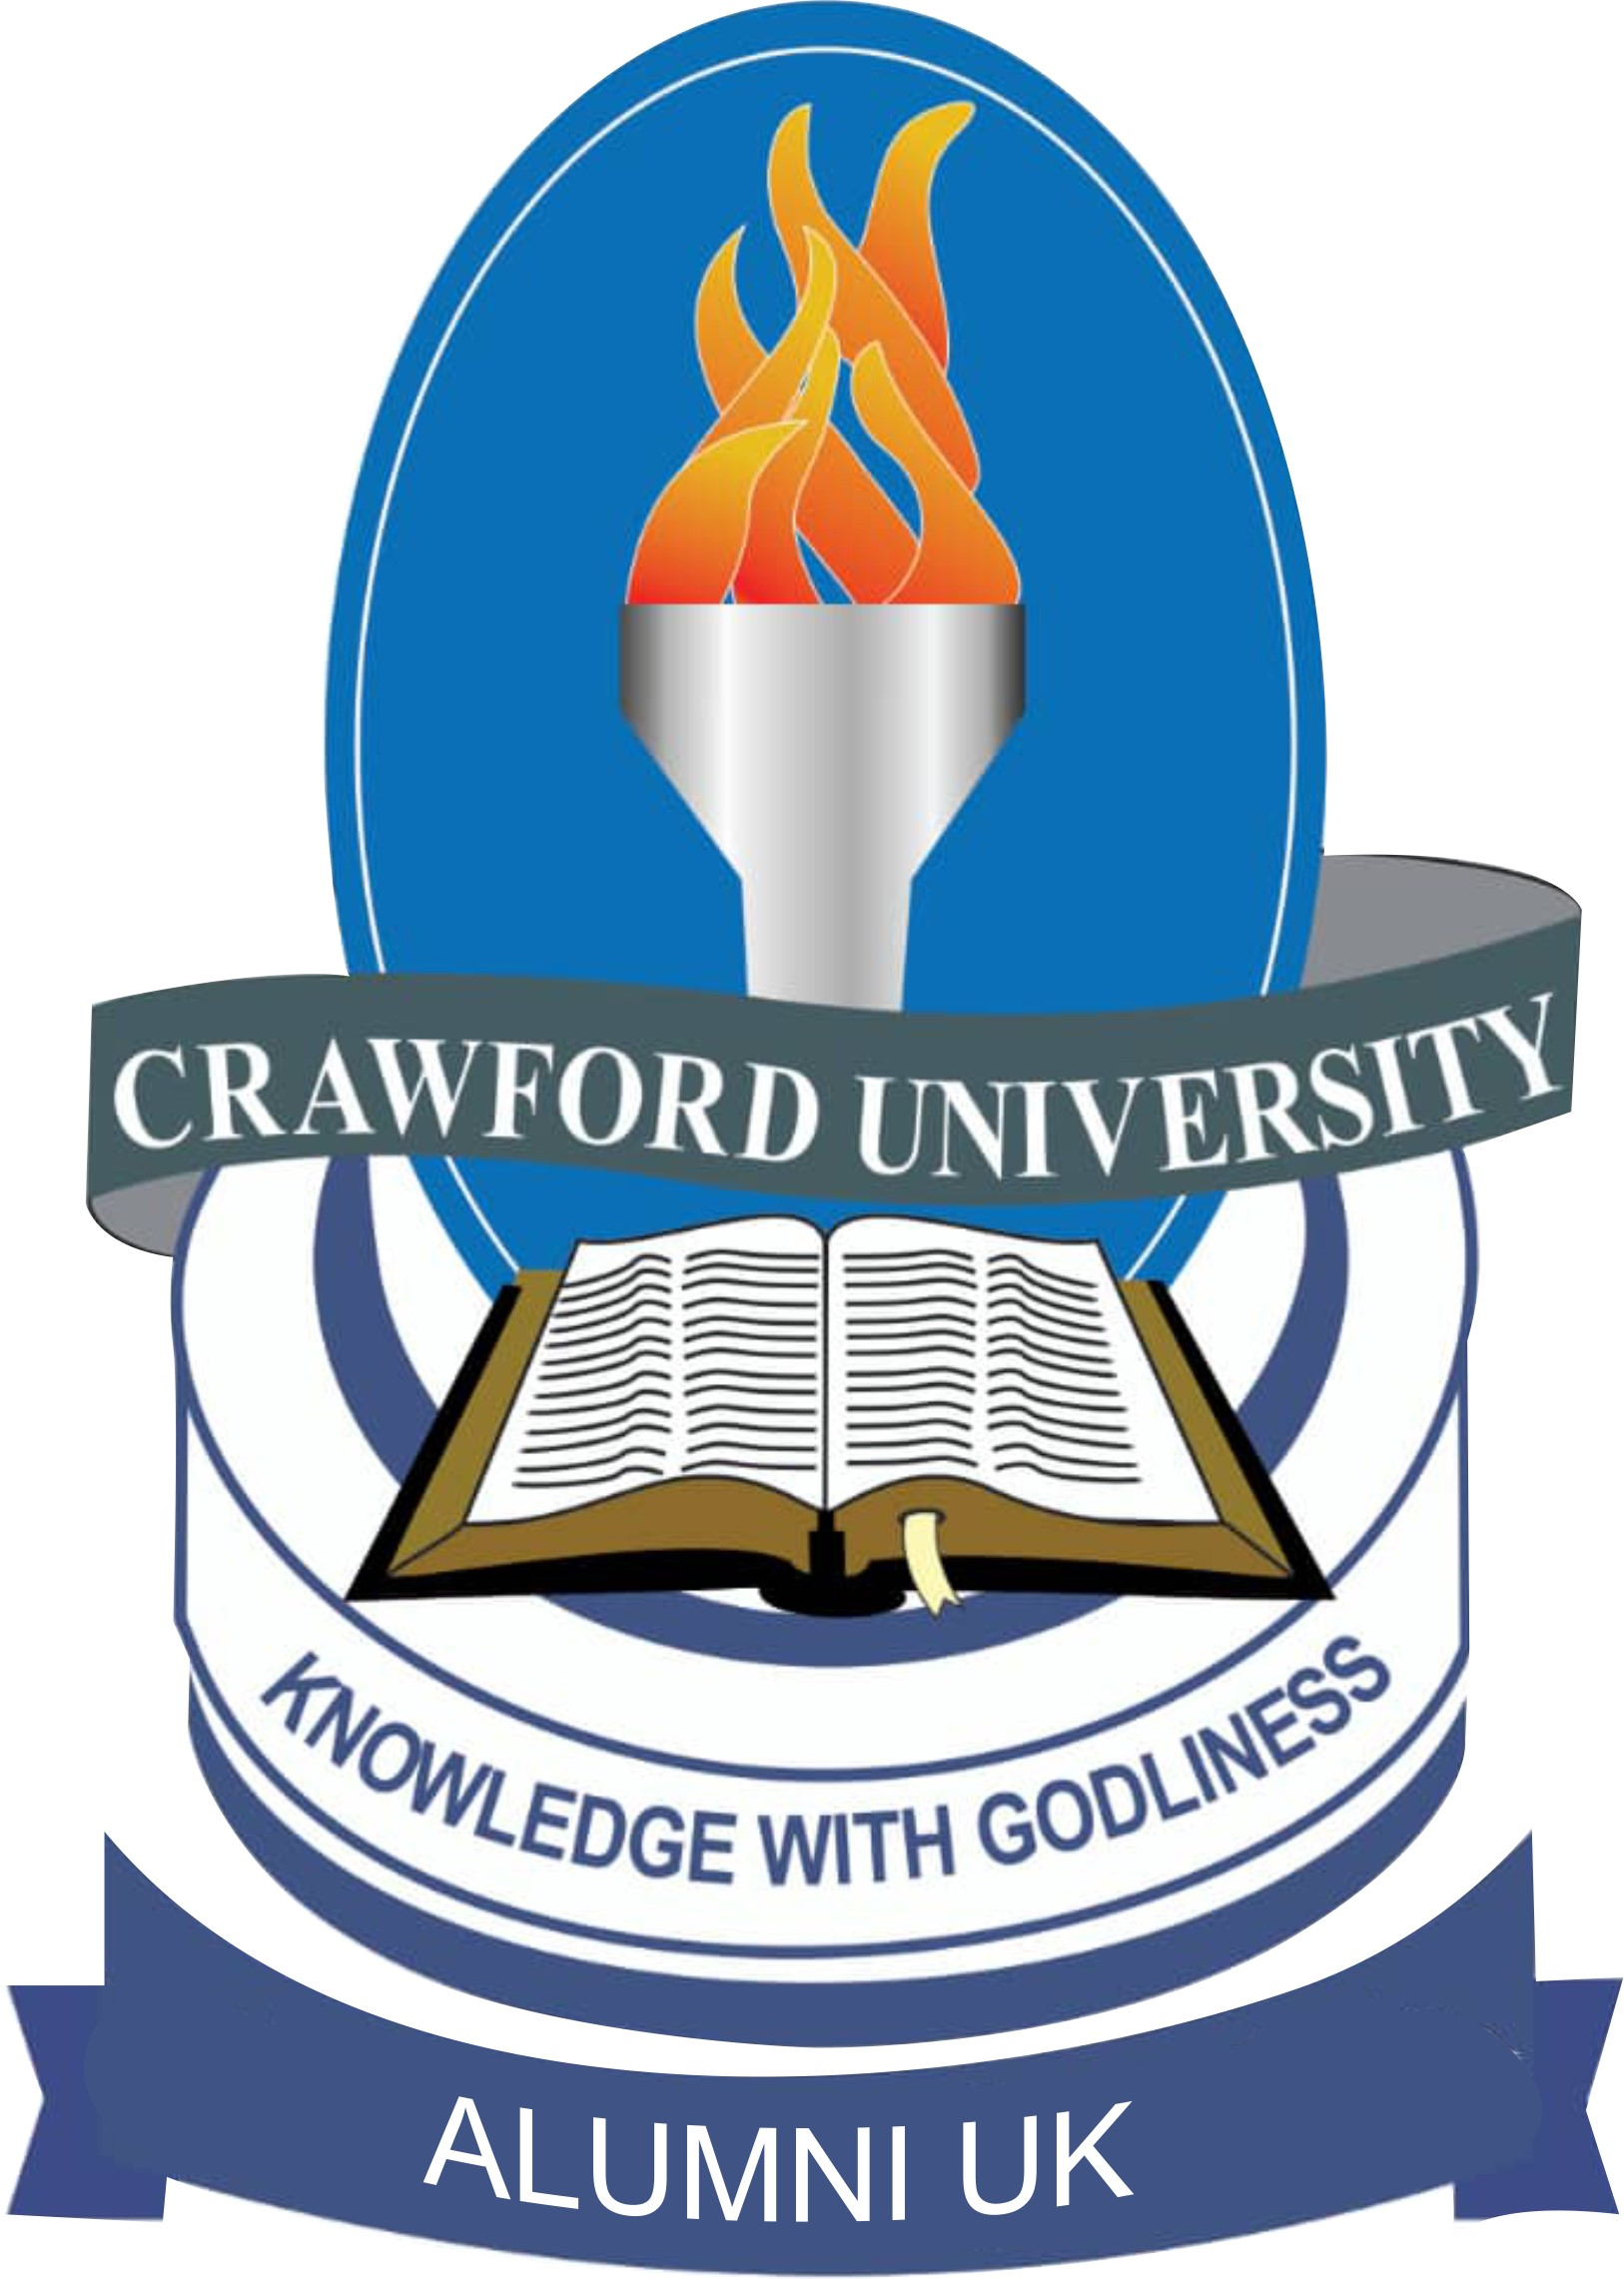 Crawford University Alumni UK